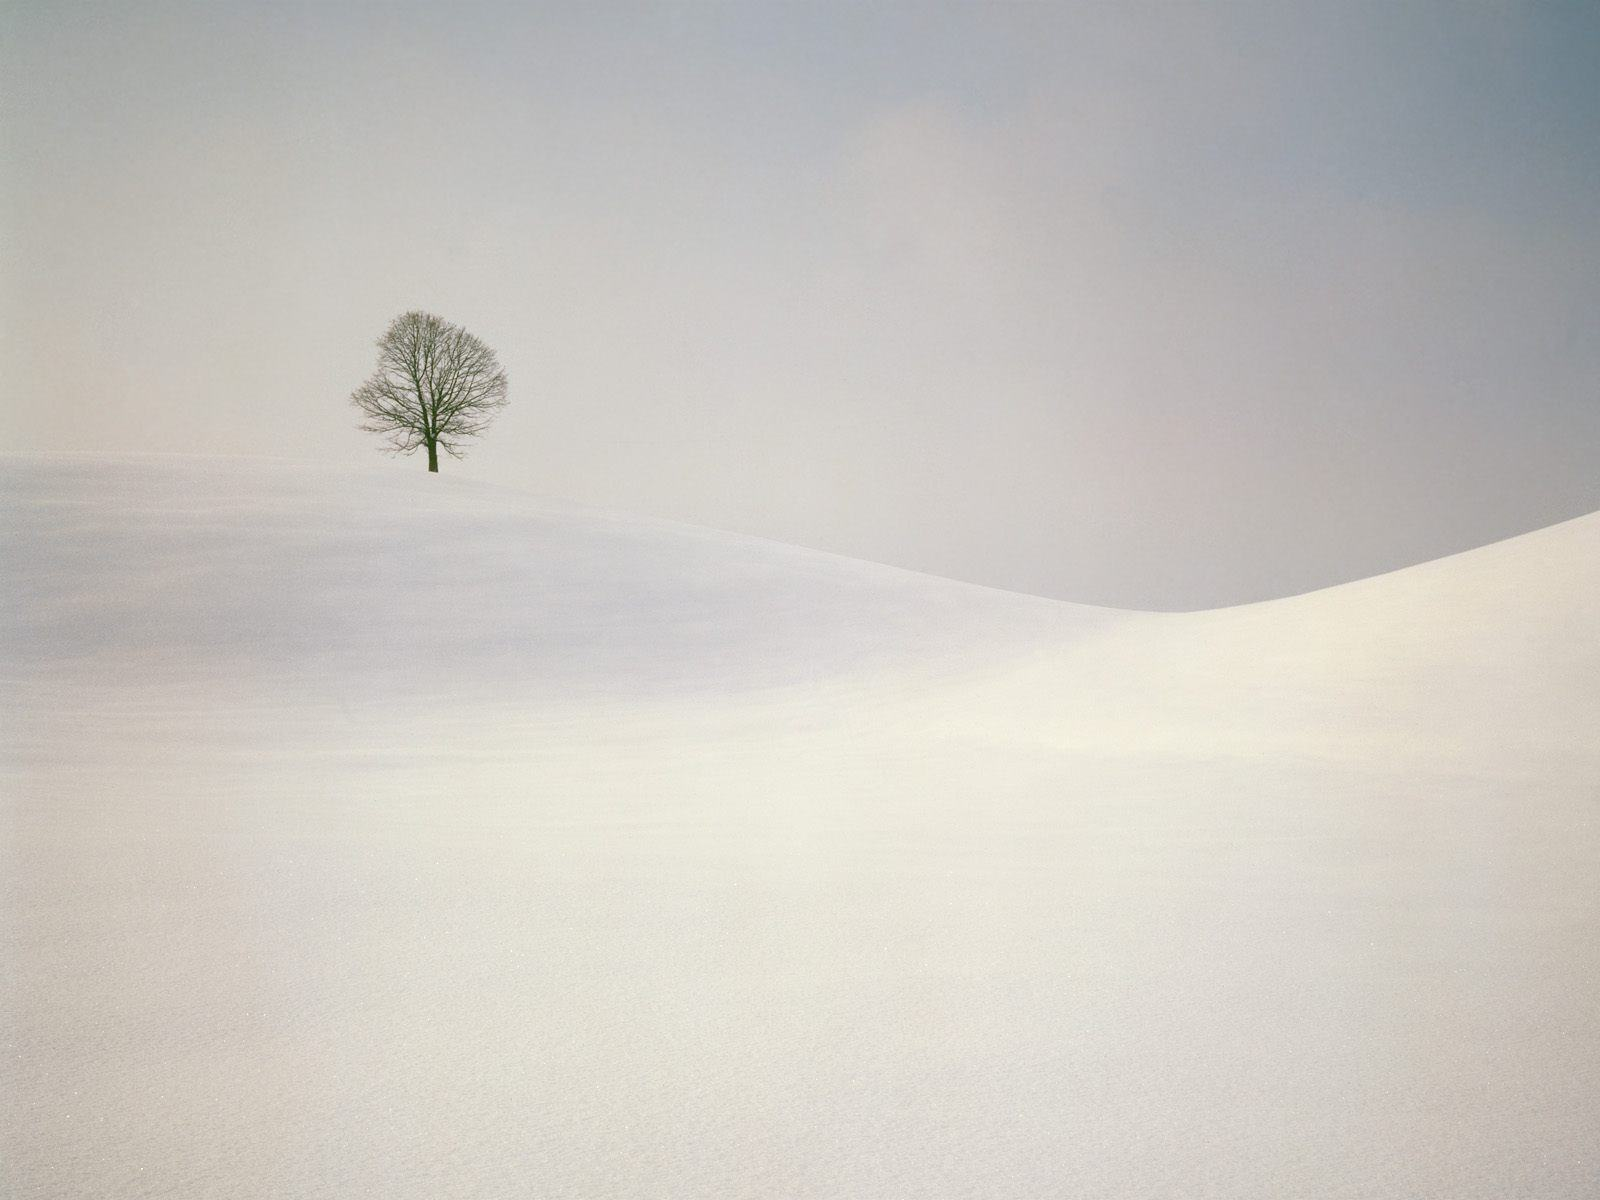 Backgrounds   snowfall winter wallpapers trees full cold weather 1600x1200